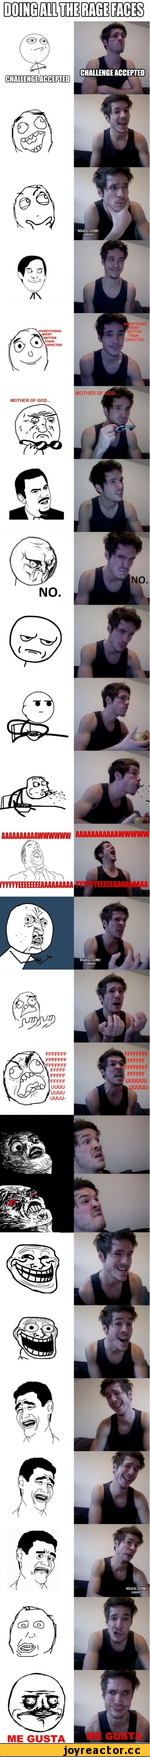 Doing all the rage faces